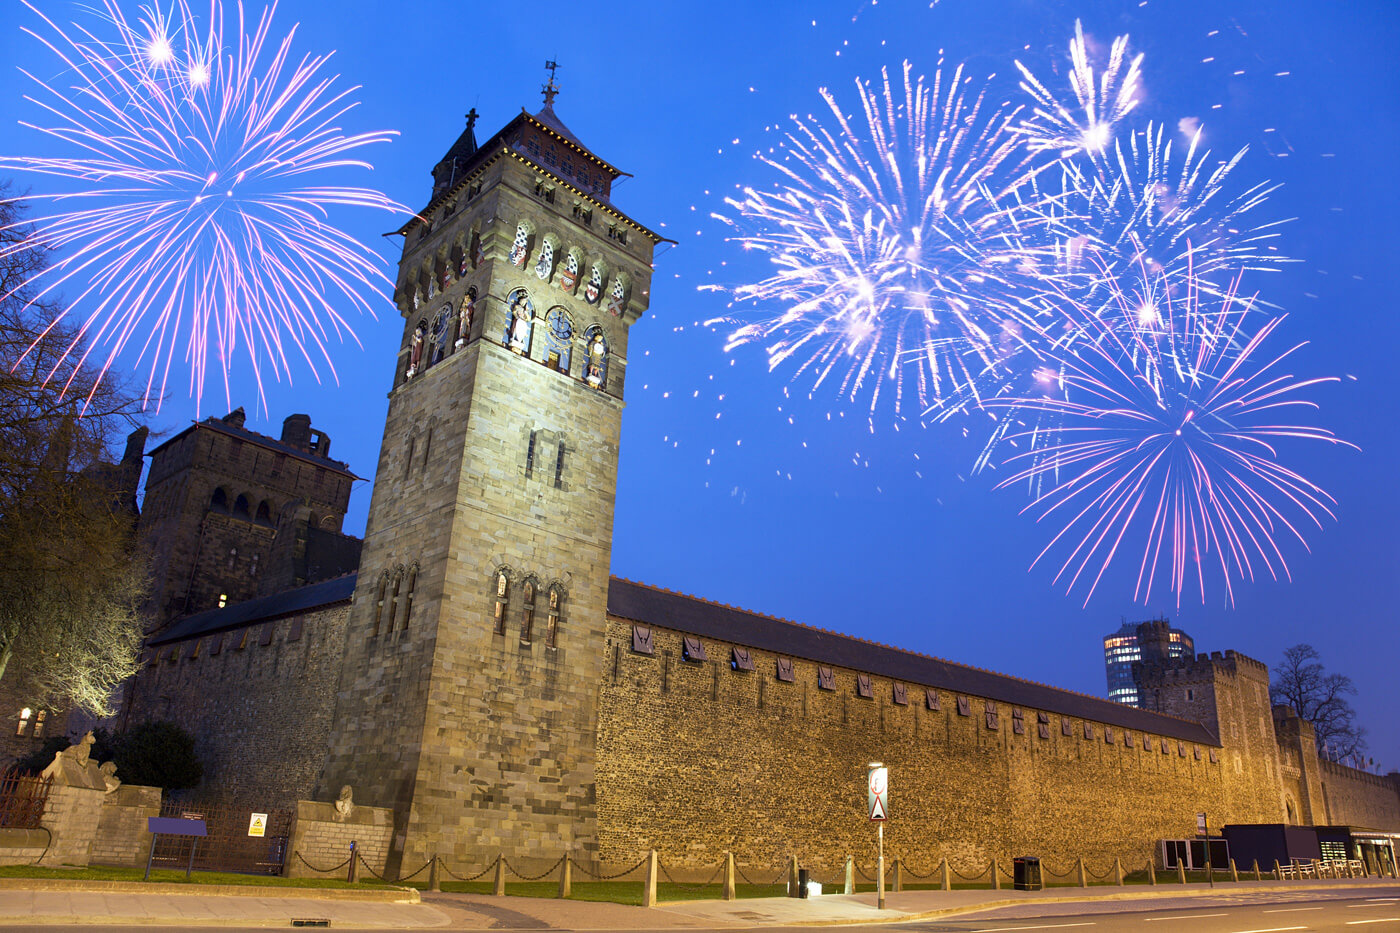 Street View of Cardiff Castle at night with Fireworks